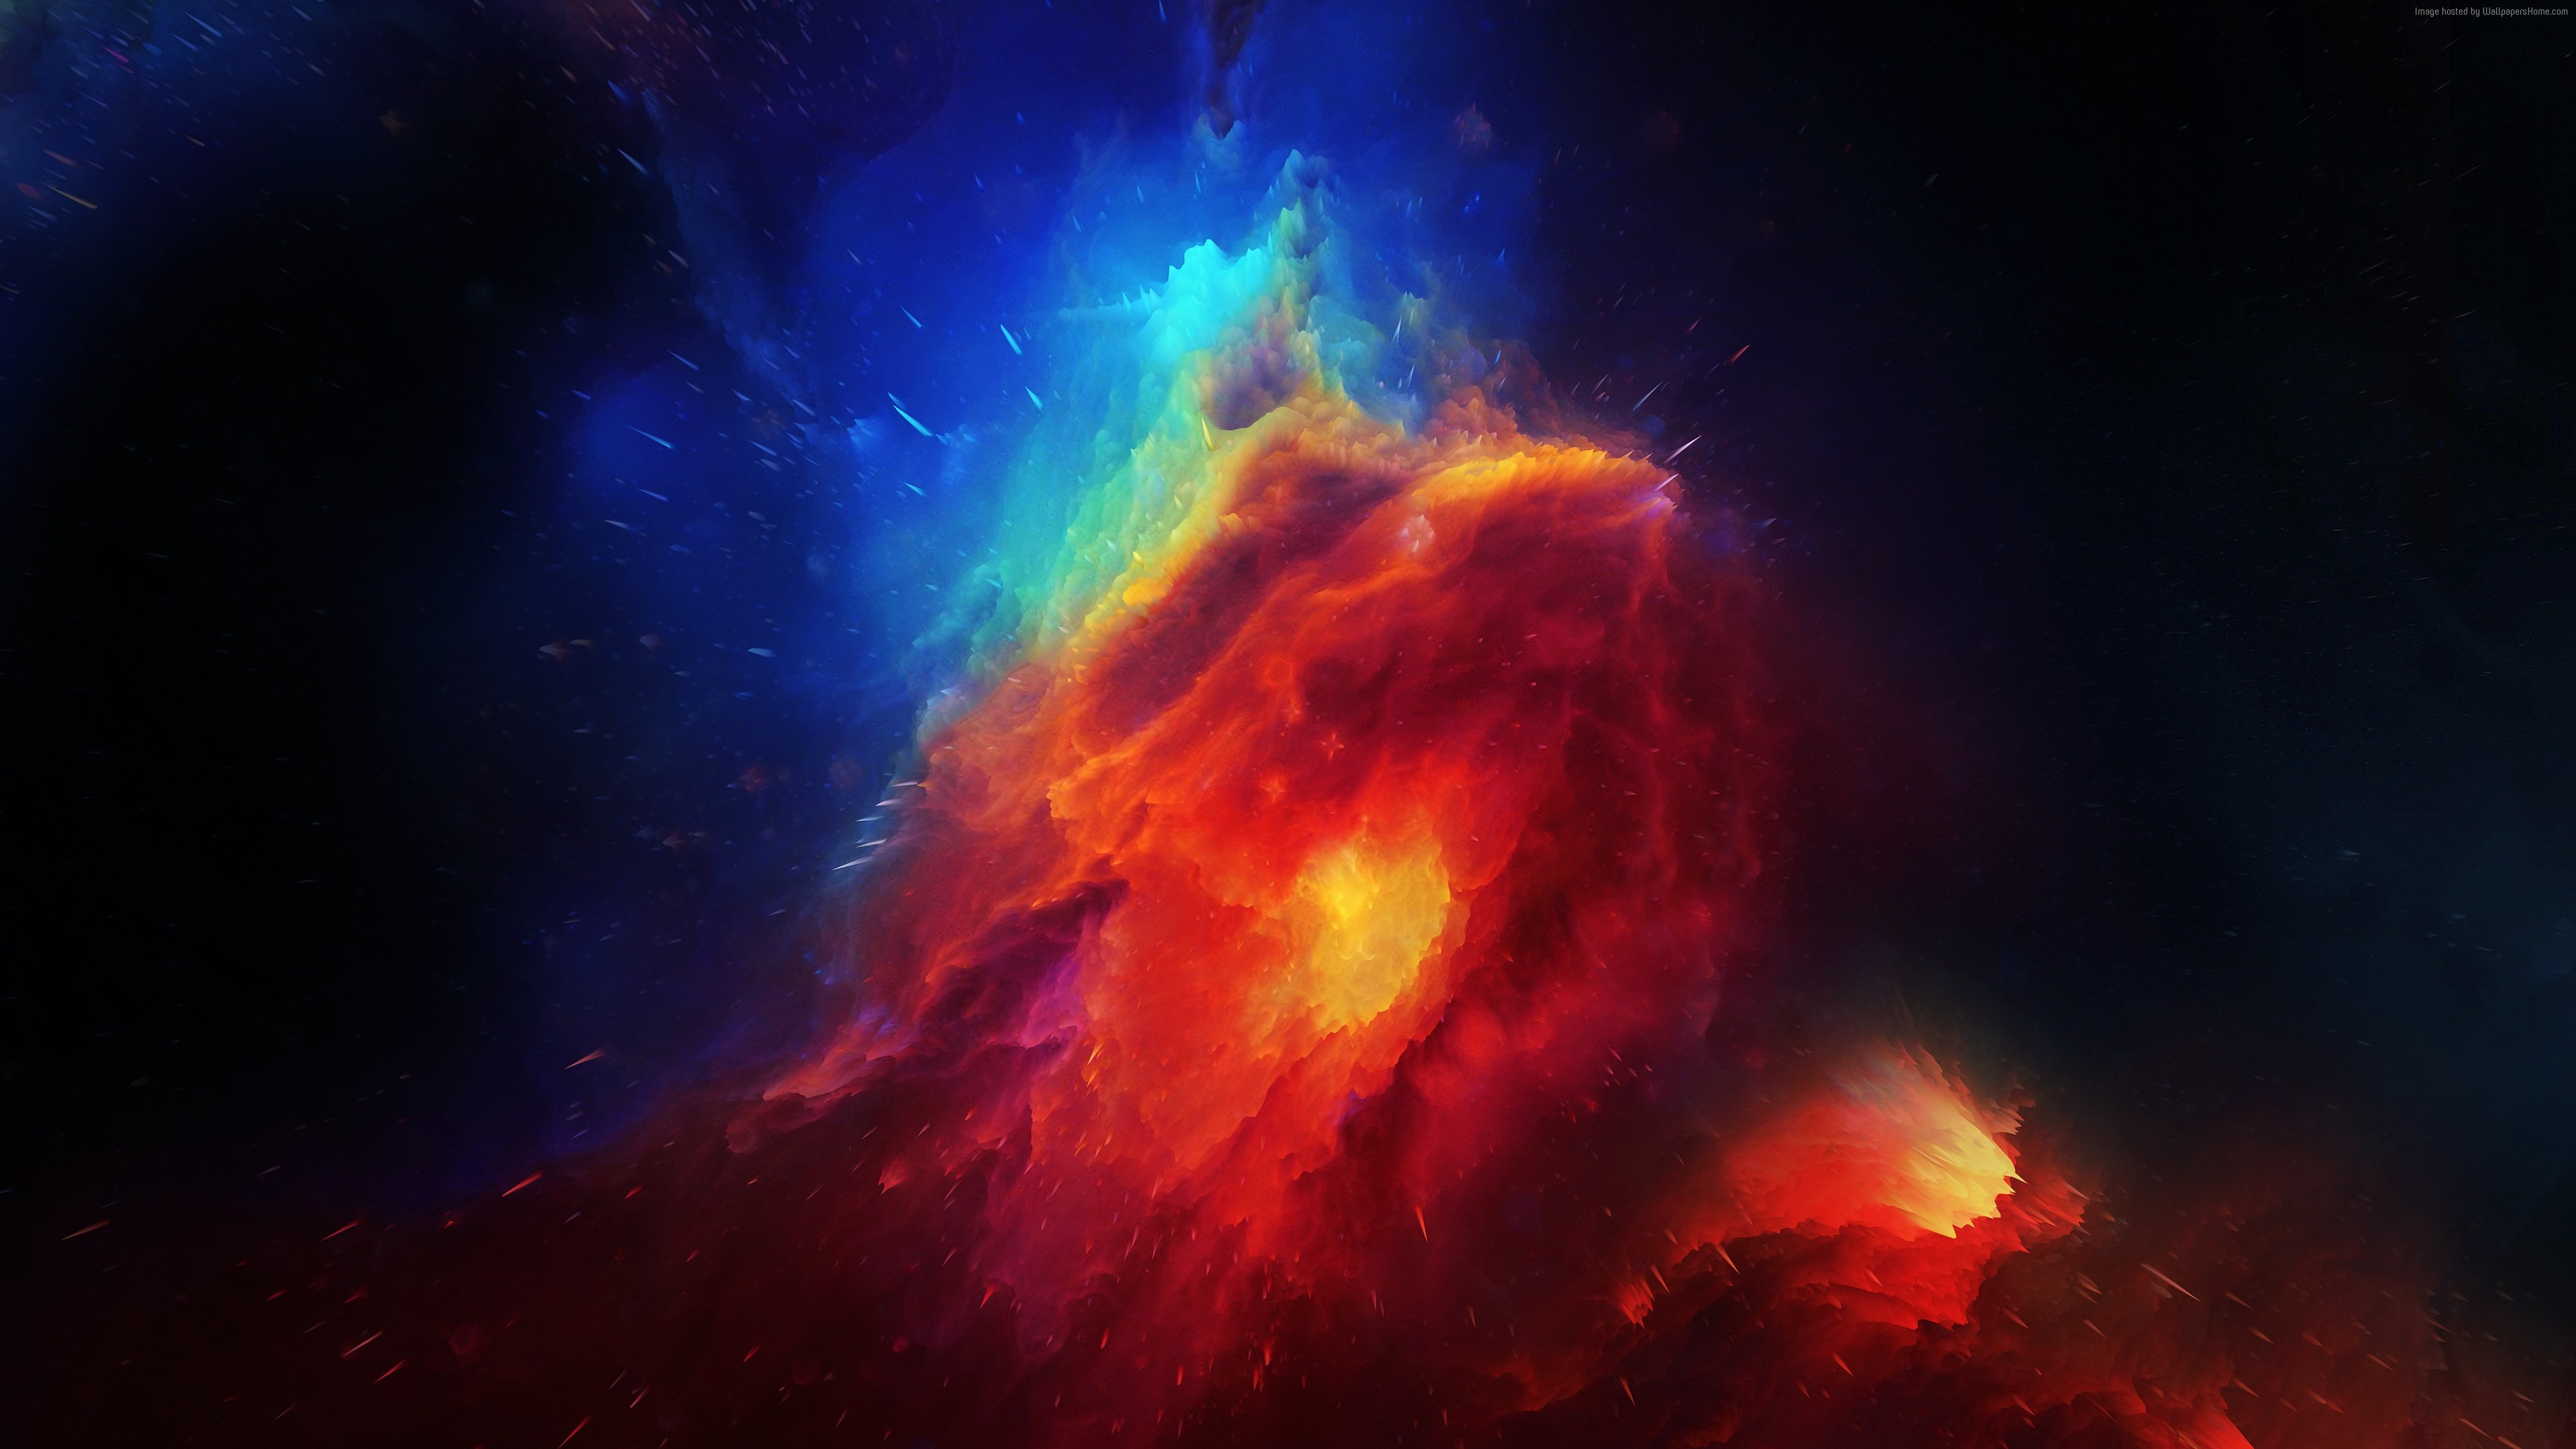 Red Blue Horsehead Nebula 2017 4k Hd Avance 10wallpapercom